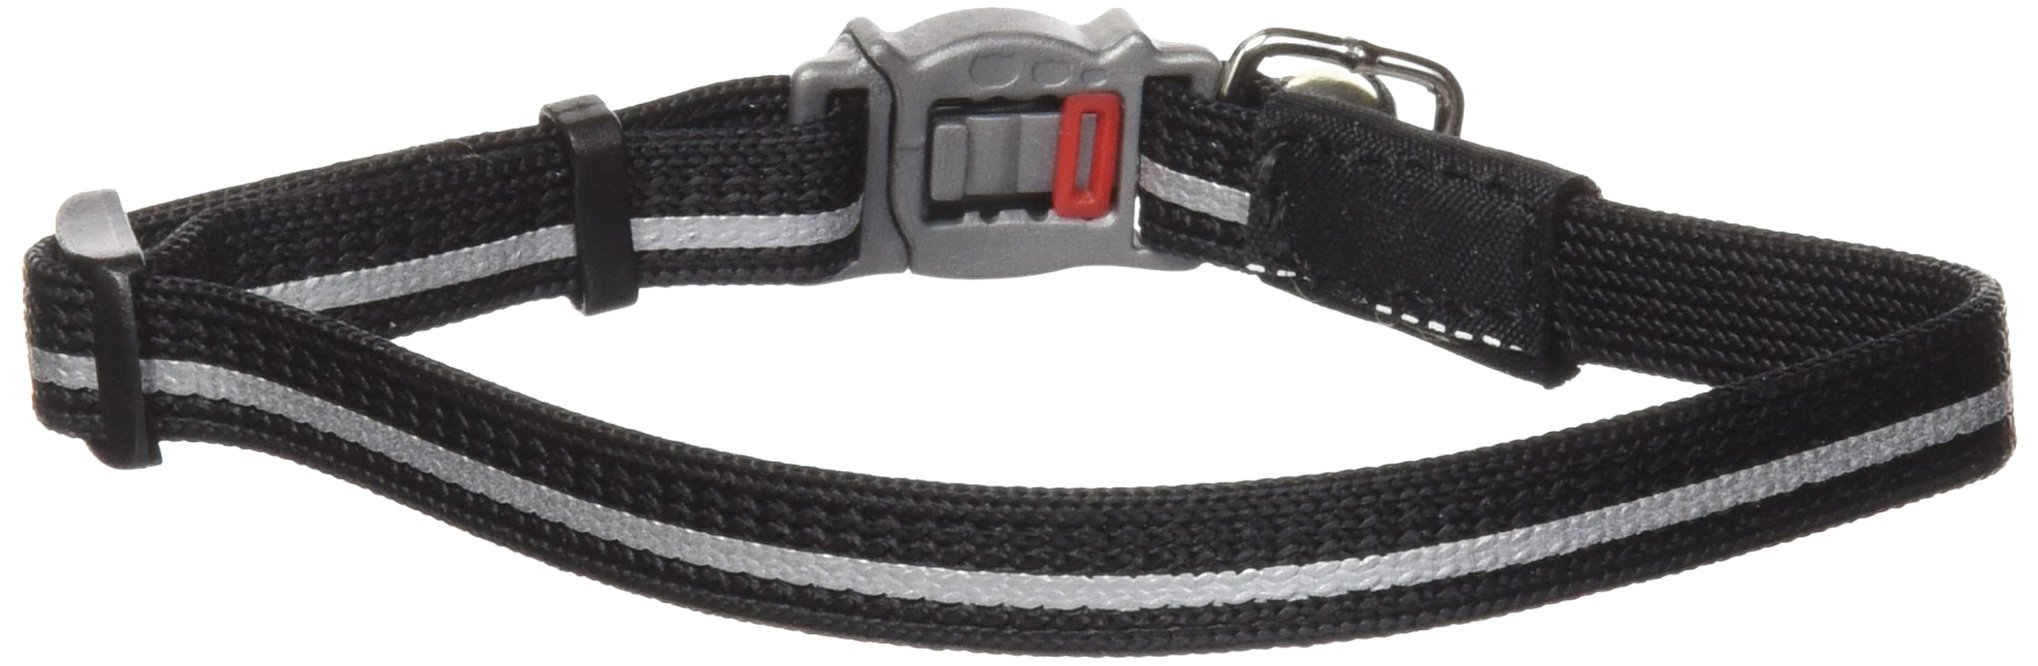 Rogz Reflective Nylon Cat Collar with Breakaway Clip and Removable Bell, fully adjustable to fit most breeds, Black